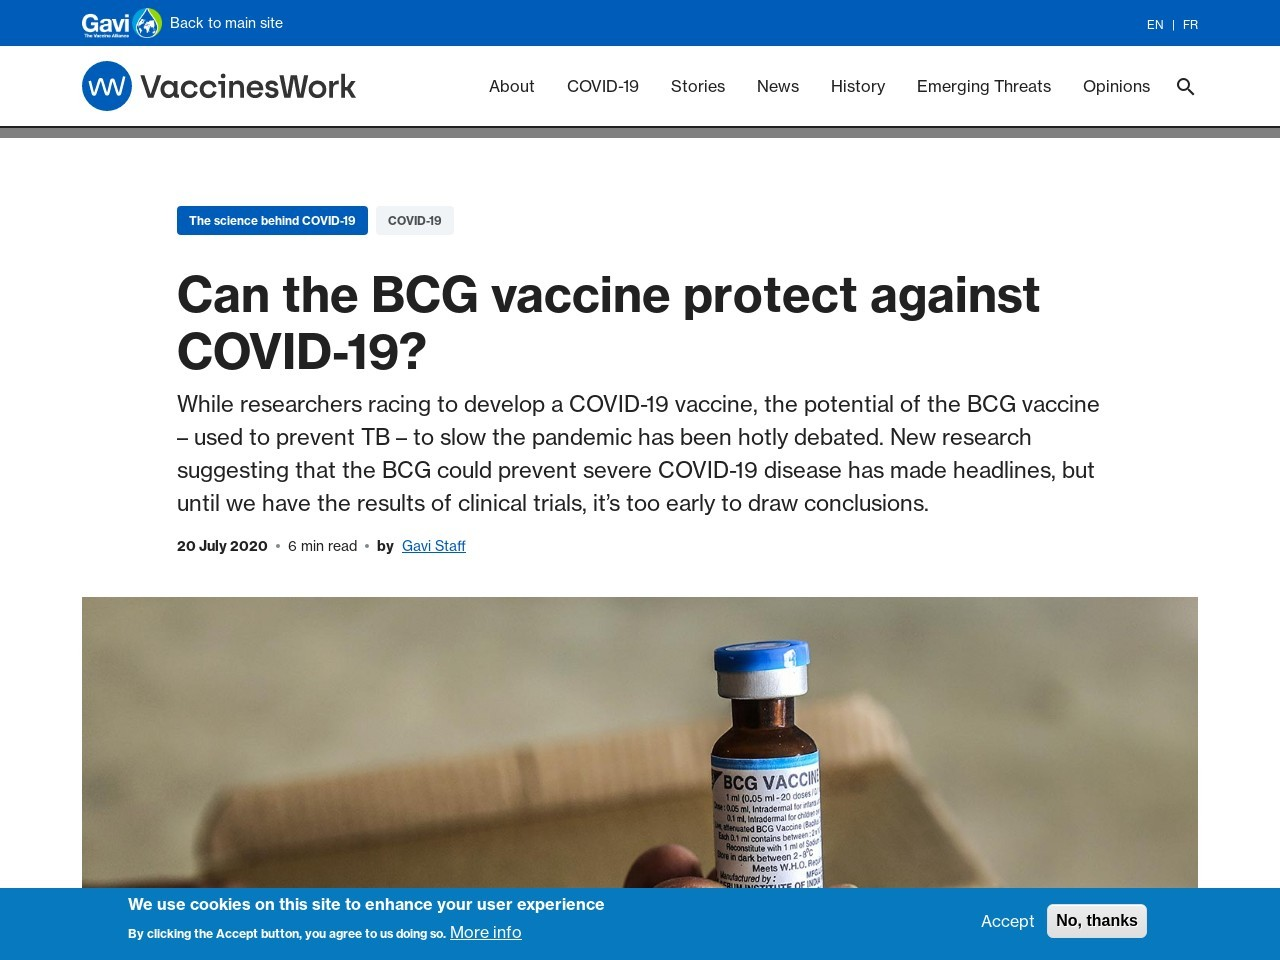 Can the BCG vaccine protect against COVID-19?